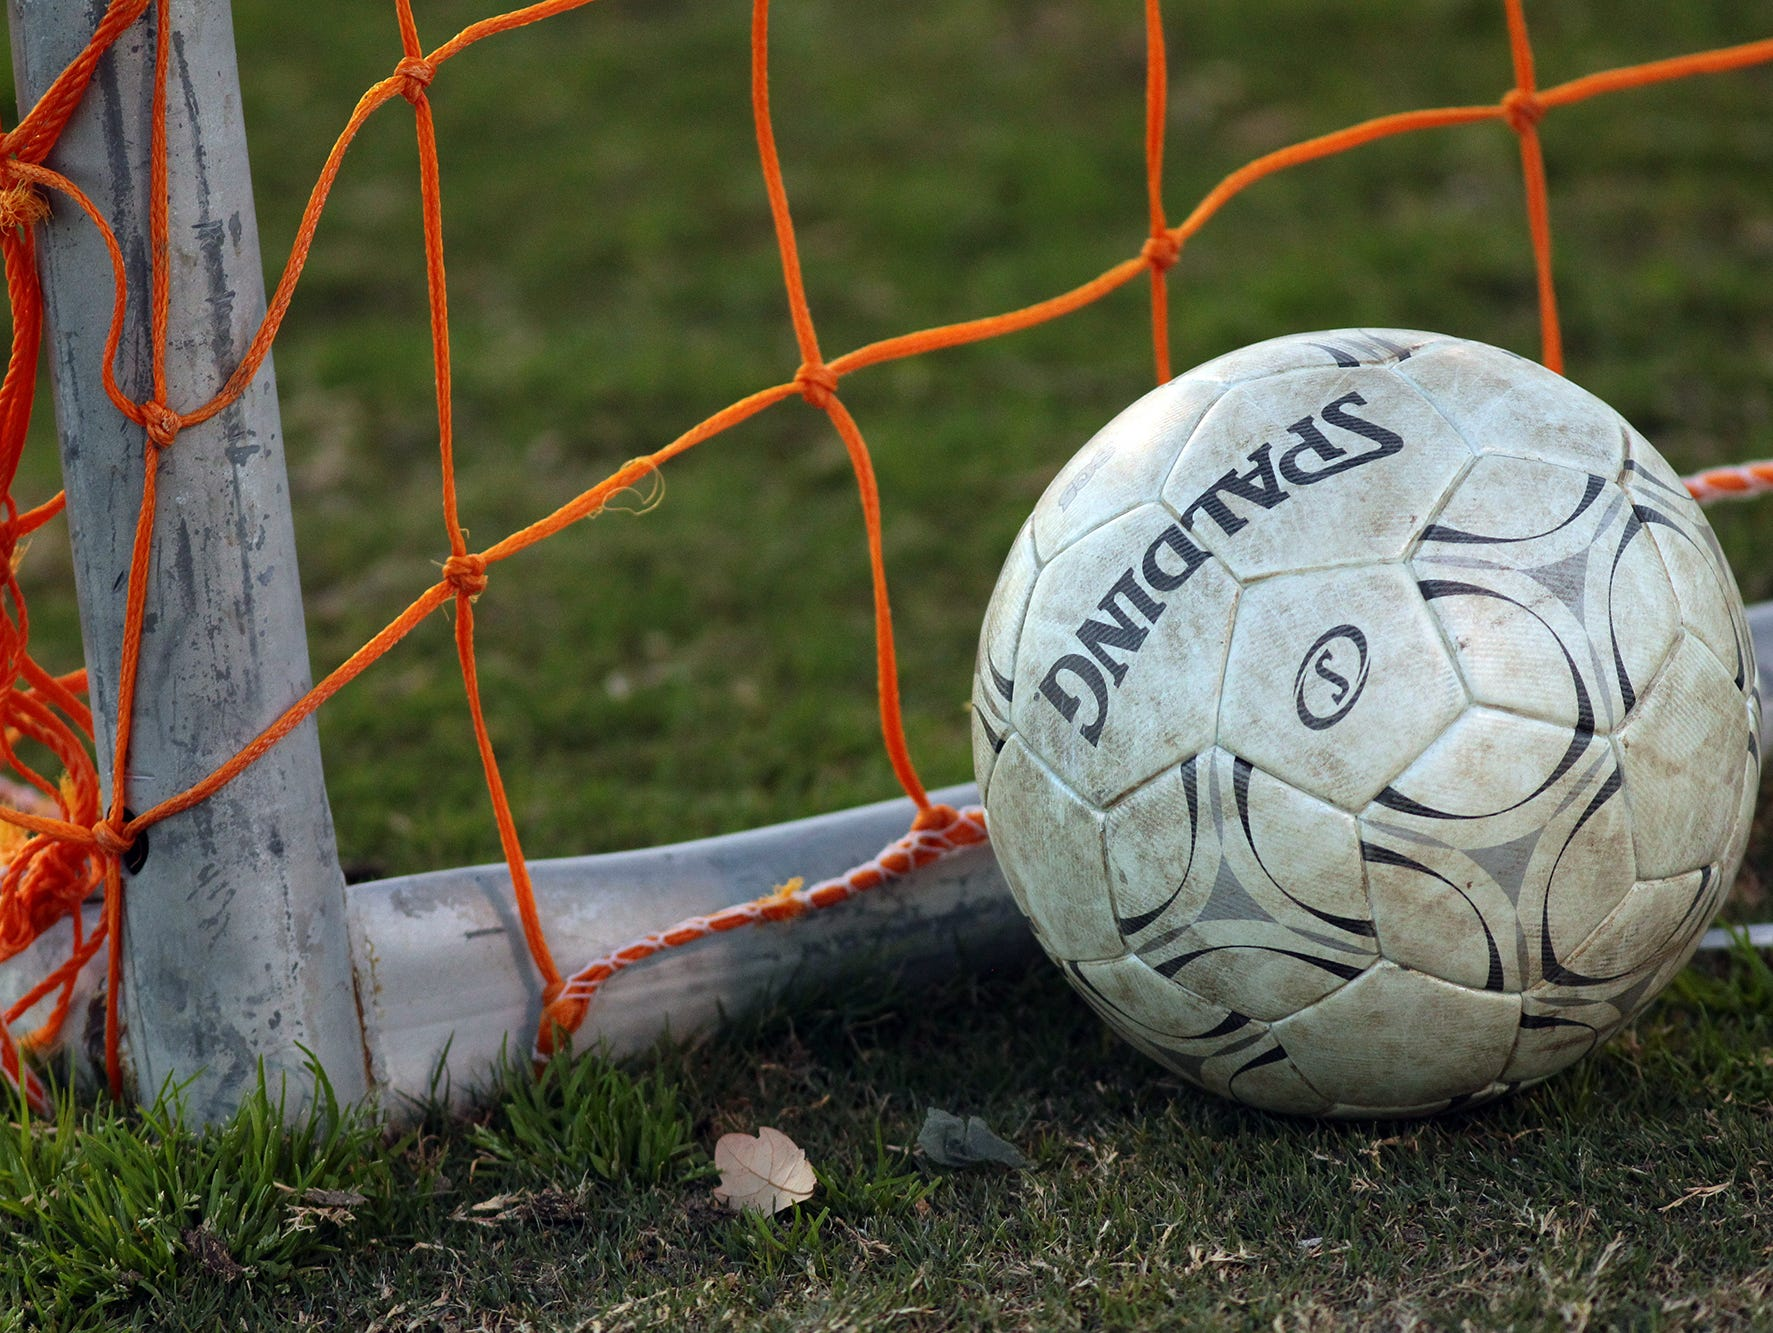 A soccer ball sits by the net during a high school soccer game in February 2015 in La Quinta.